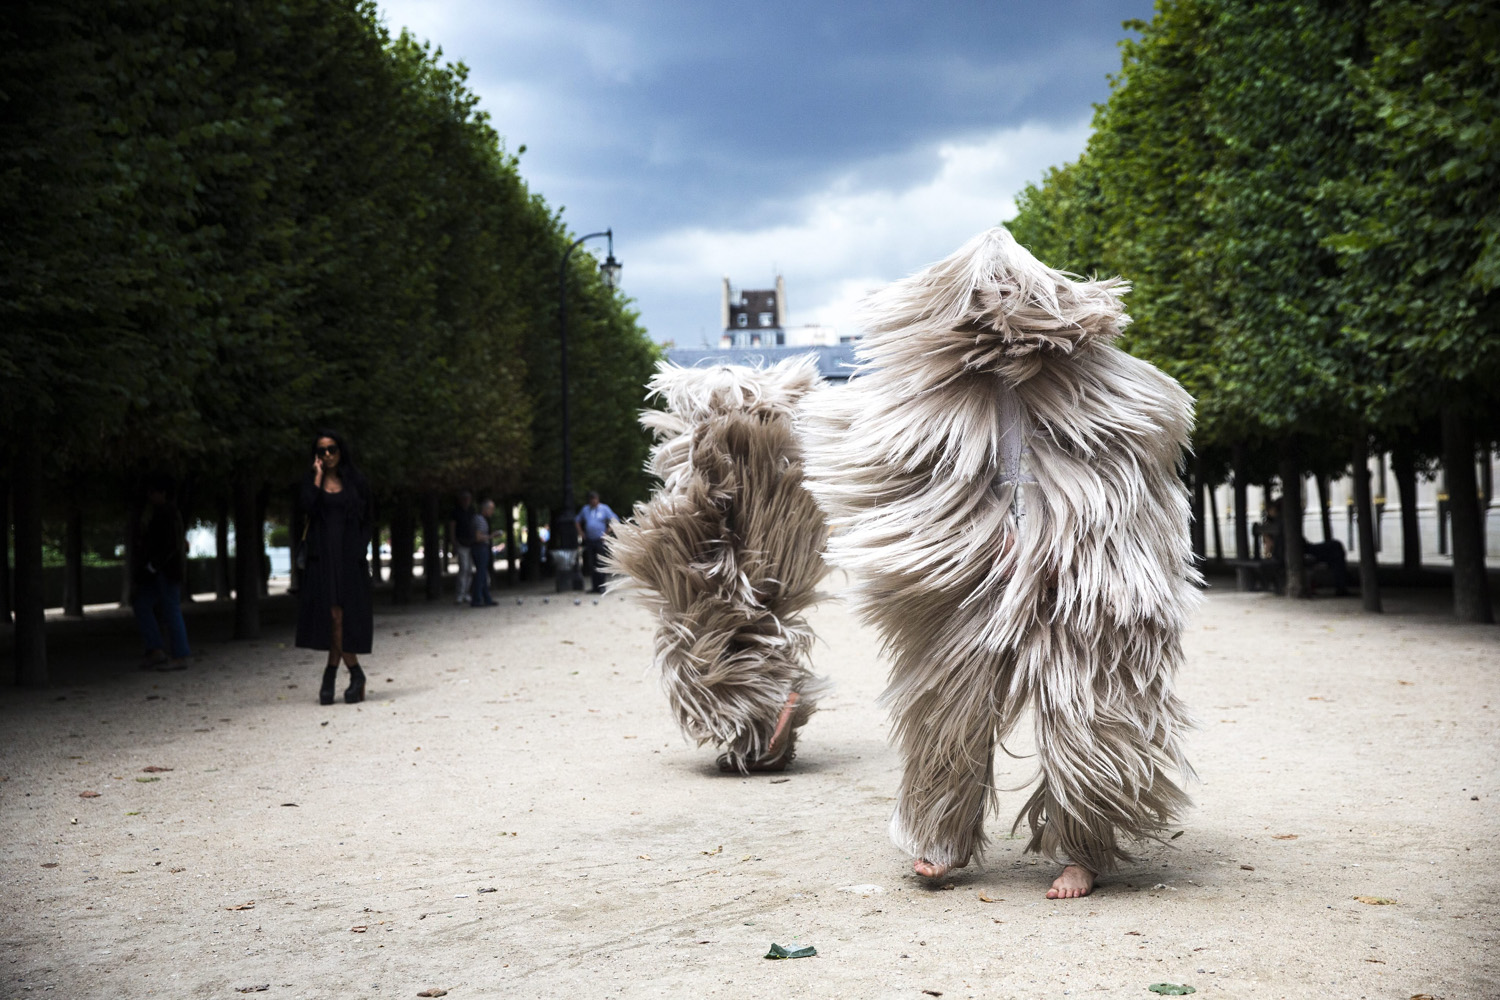 Performers present creations from the Haute Coiffure Fall-Winter 2014/15 collection by French designer Charlie Le Mindu during the Paris Fashion Week, in Paris on July 7, 2014.